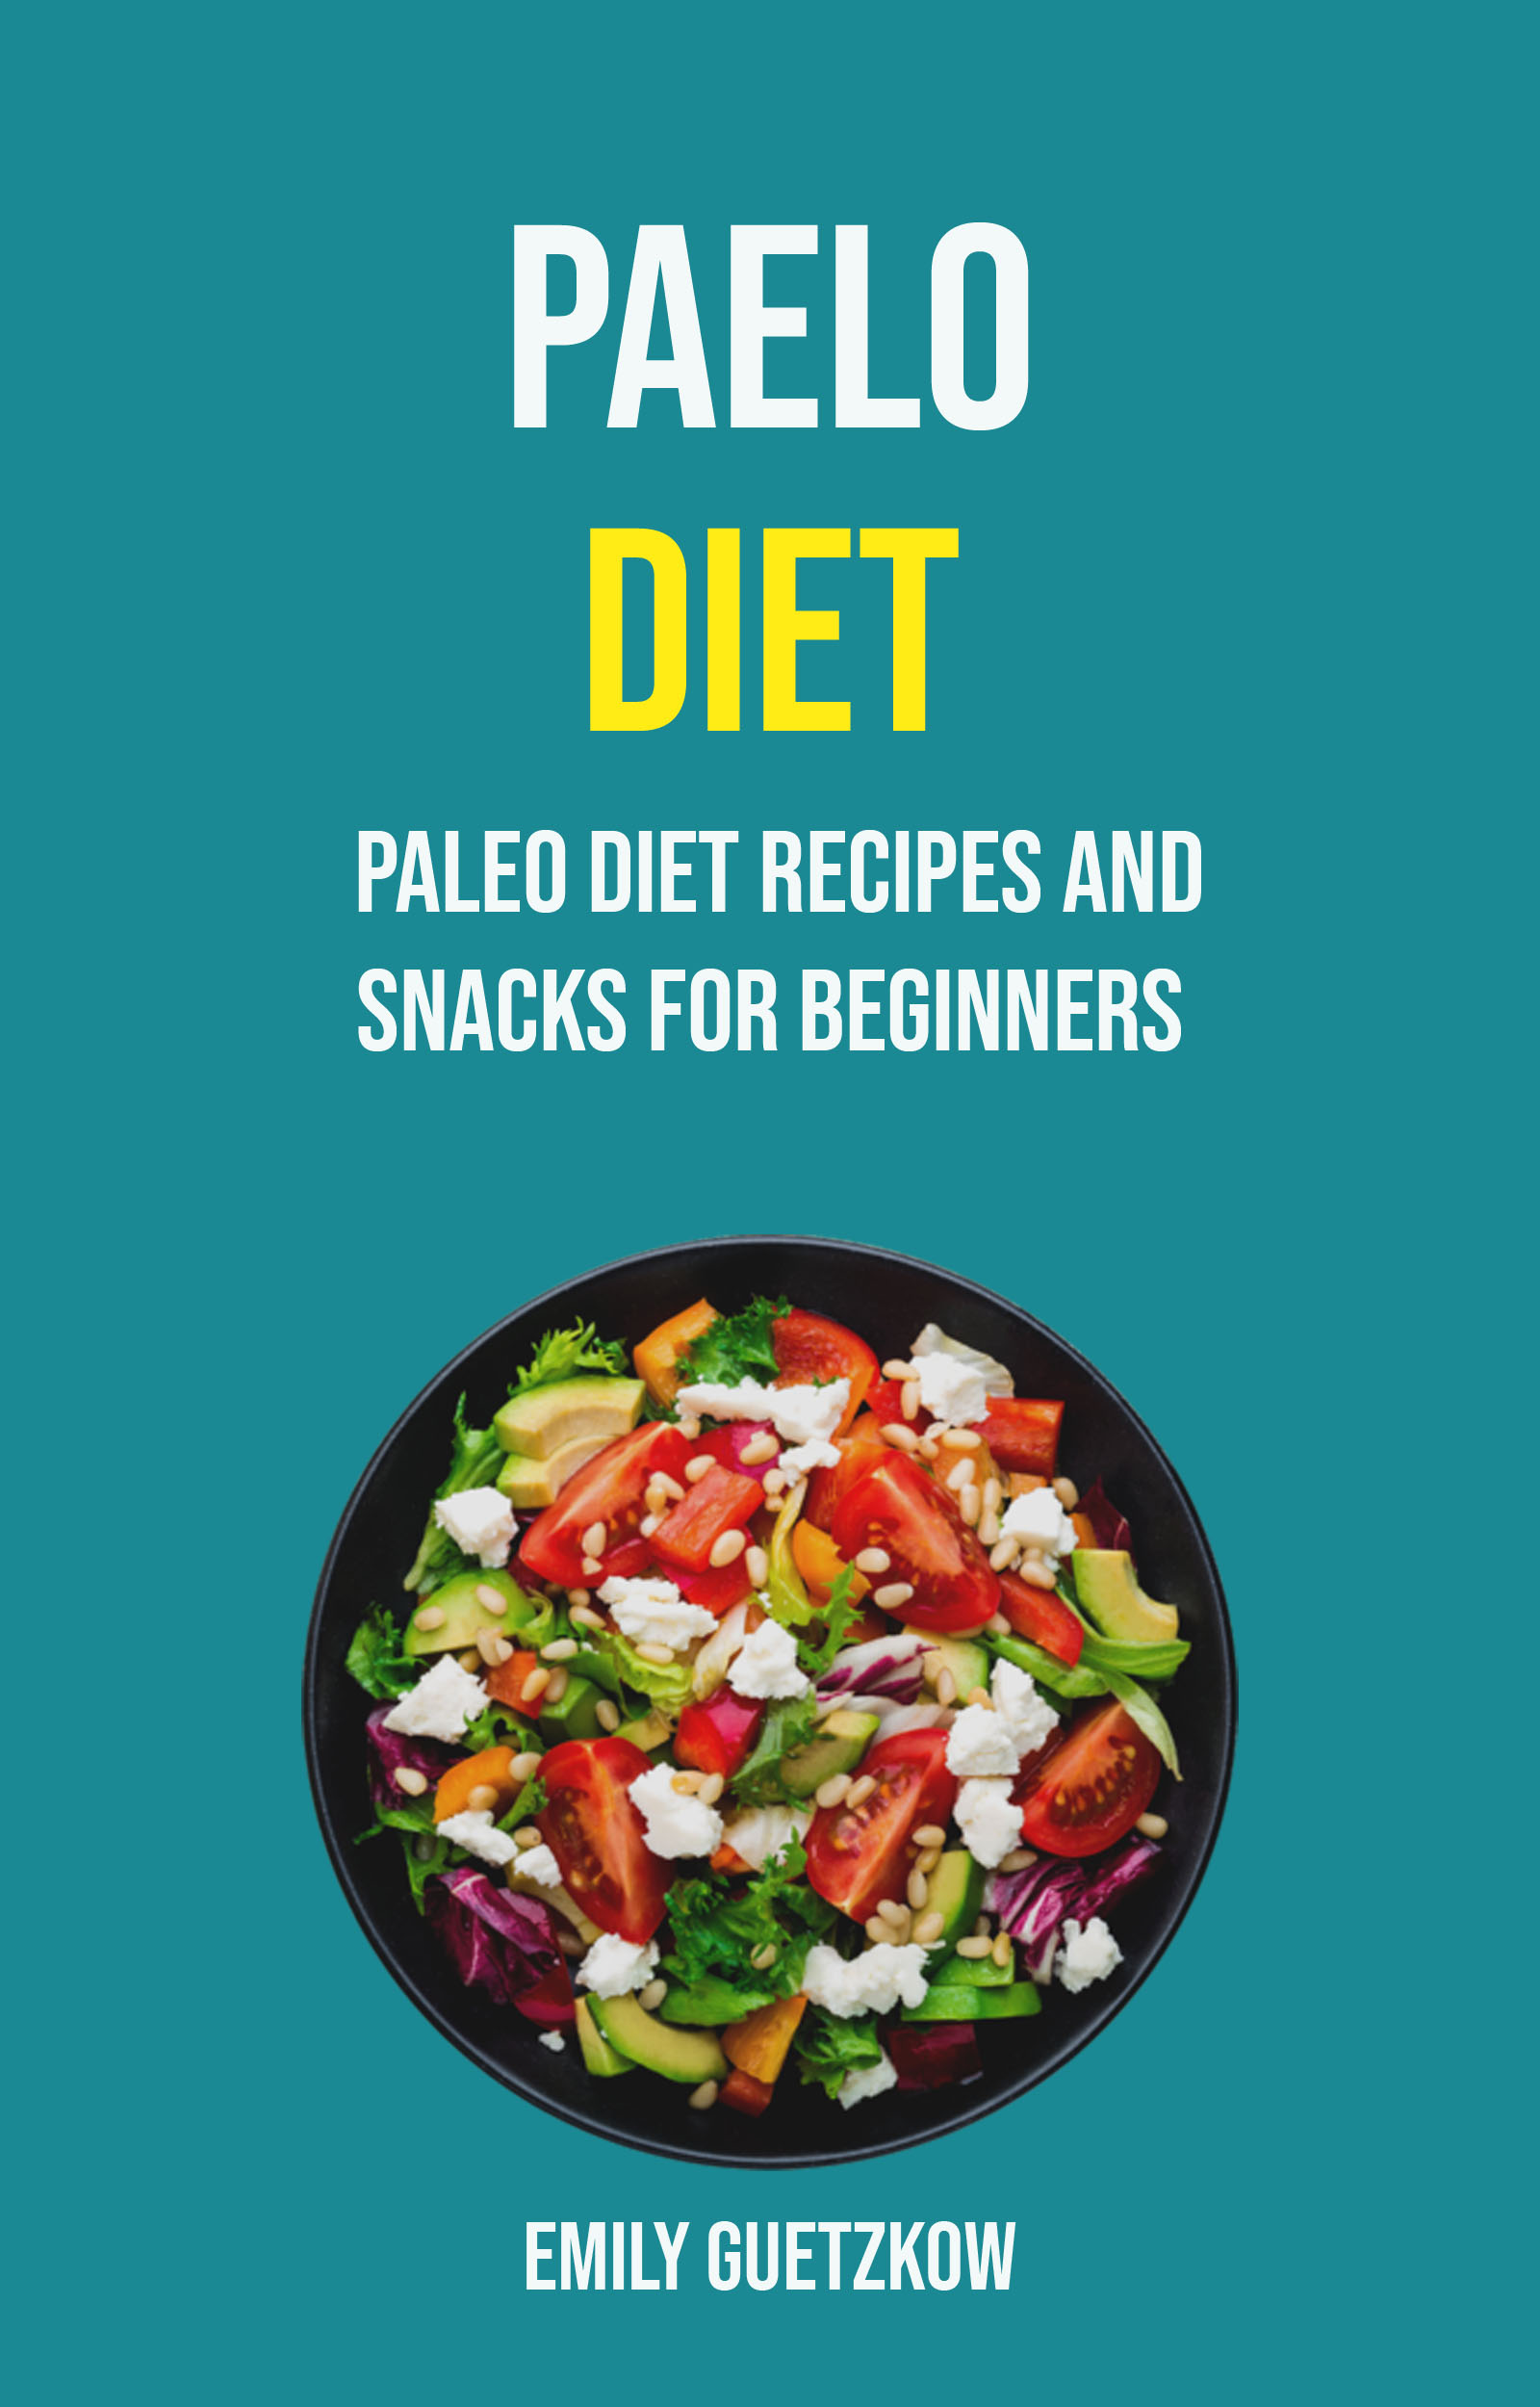 Paelo diet: paleo diet recipes and snacks for beginners